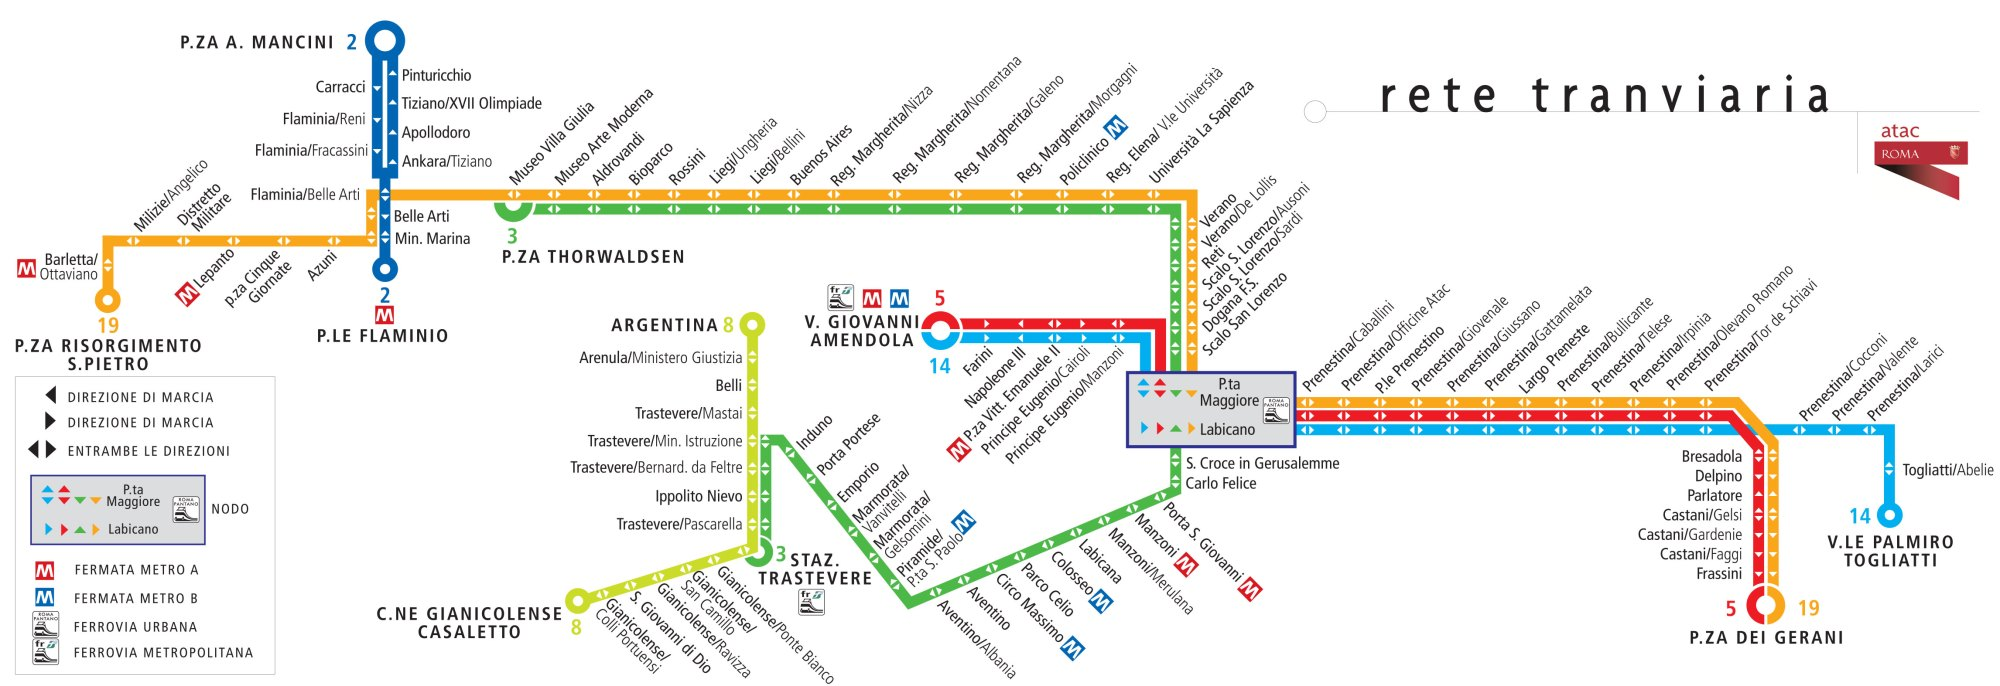 hight resolution of map of rome tram network